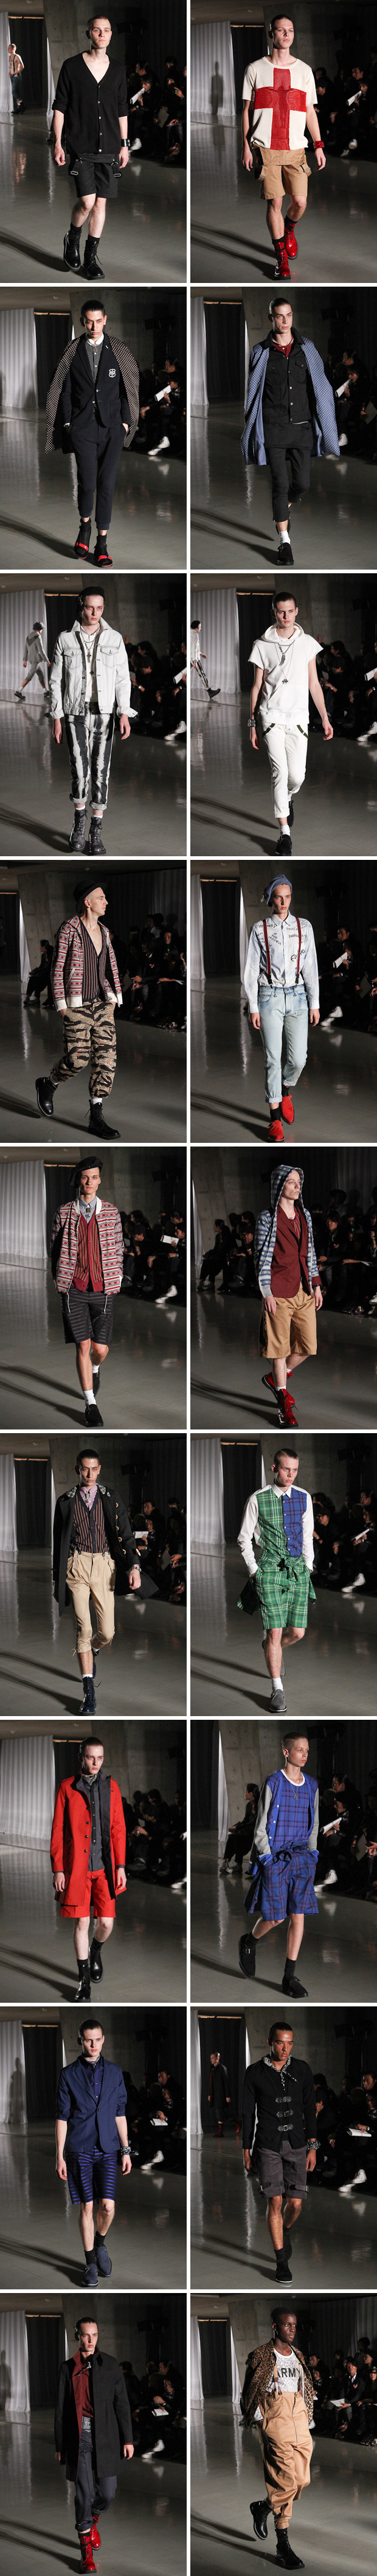 discovered 2011 springsummer four you collection